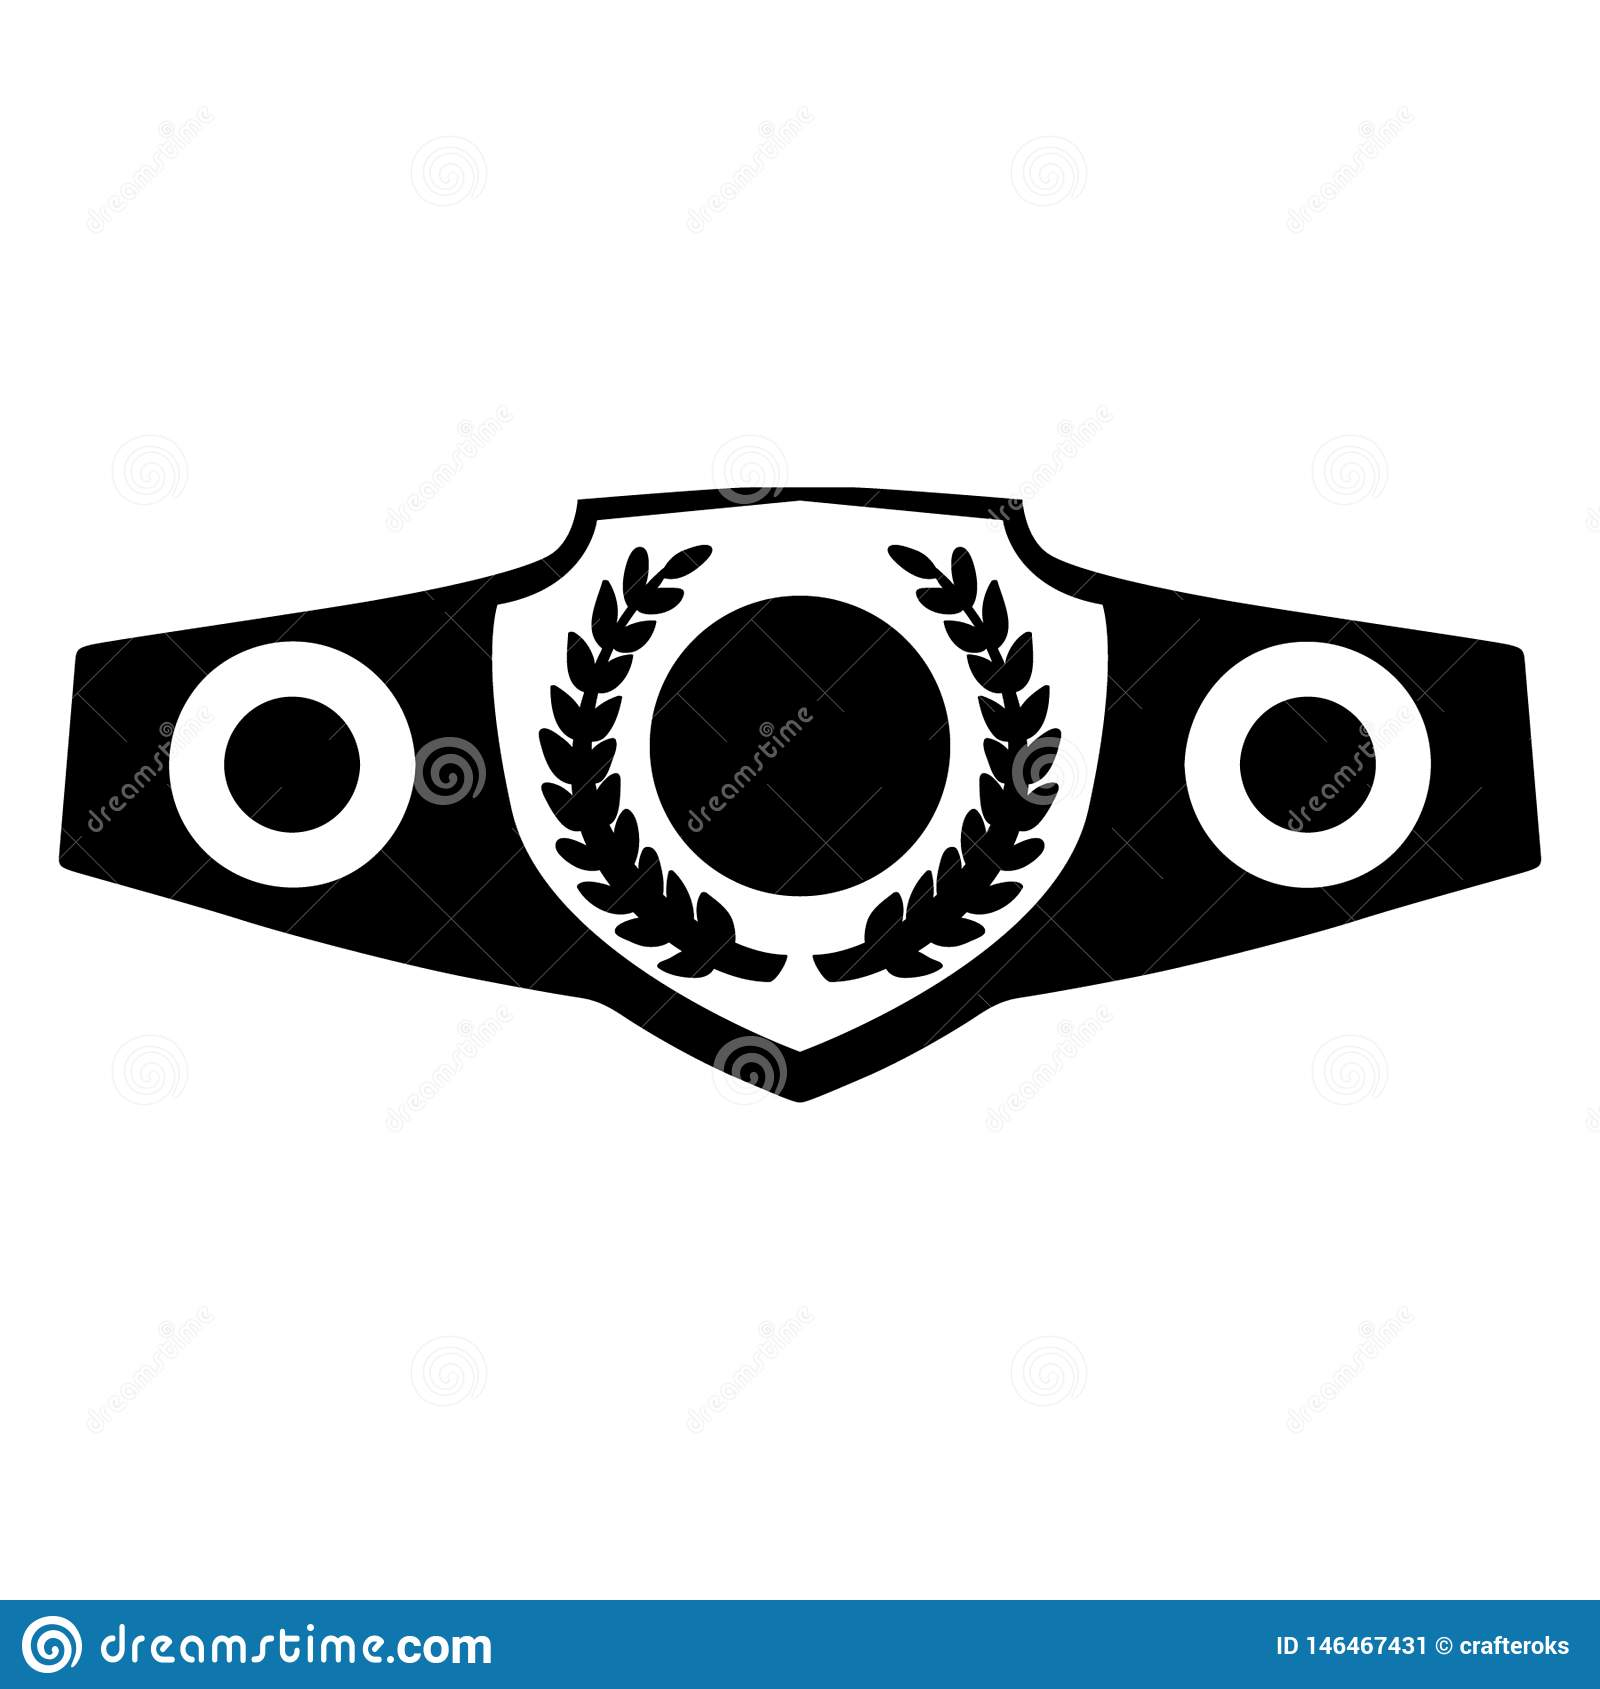 picture relating to Printable Wrestling Belt Template called Championship Belt Hand Drawn Crafteroks Svg Free of charge, Absolutely free Svg